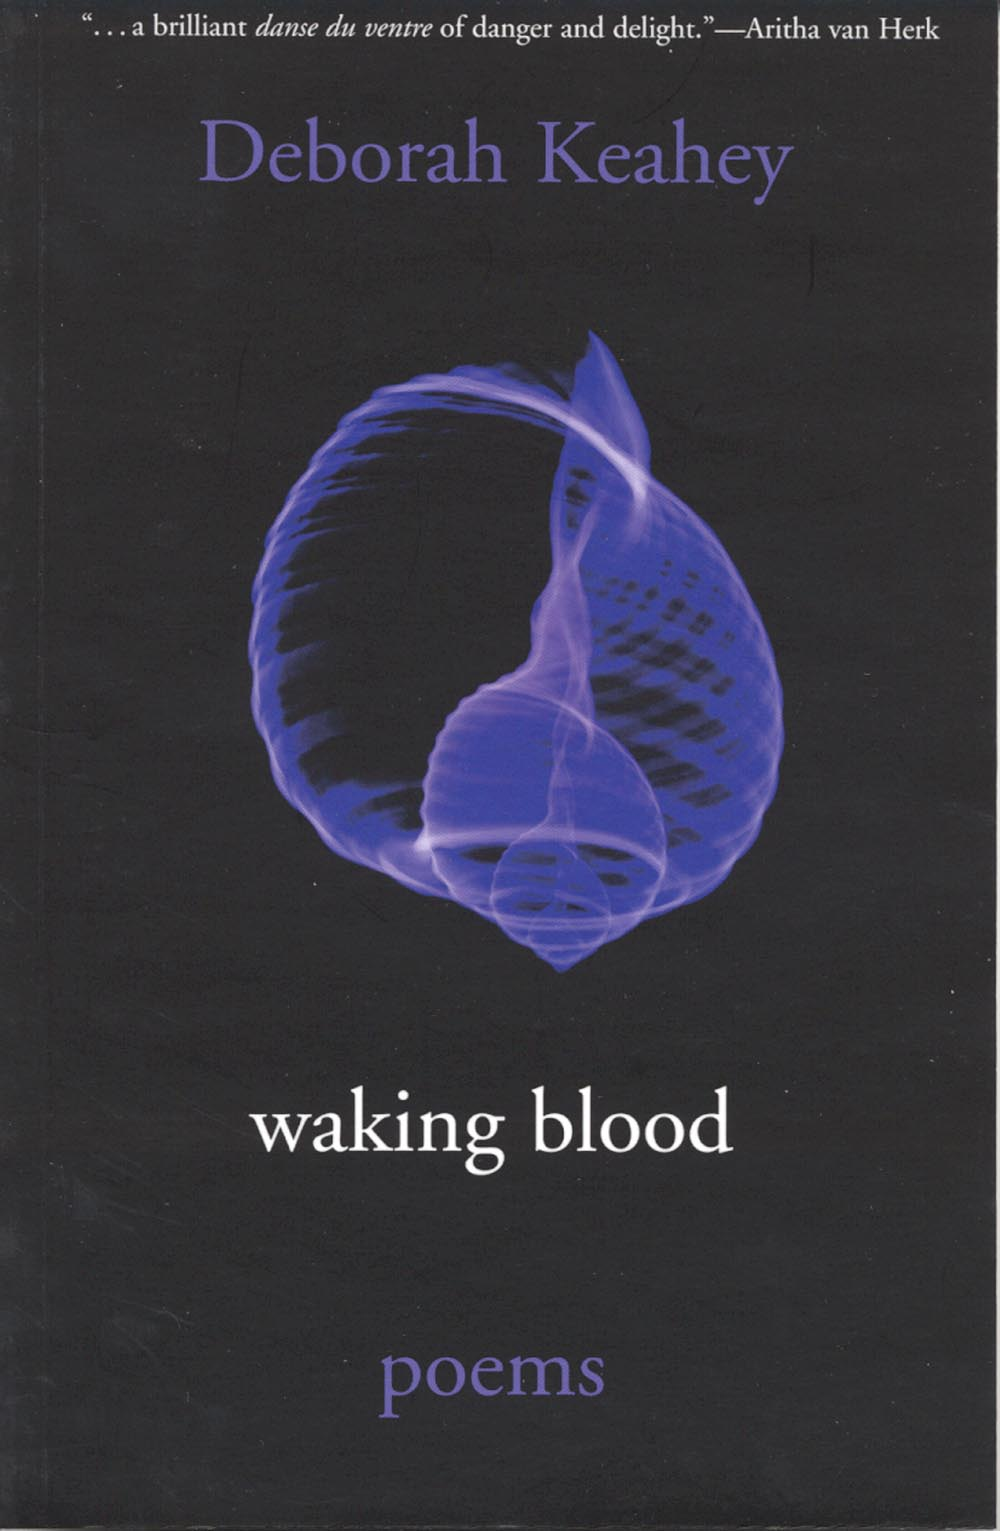 Waking Blood by Deborah Keahey